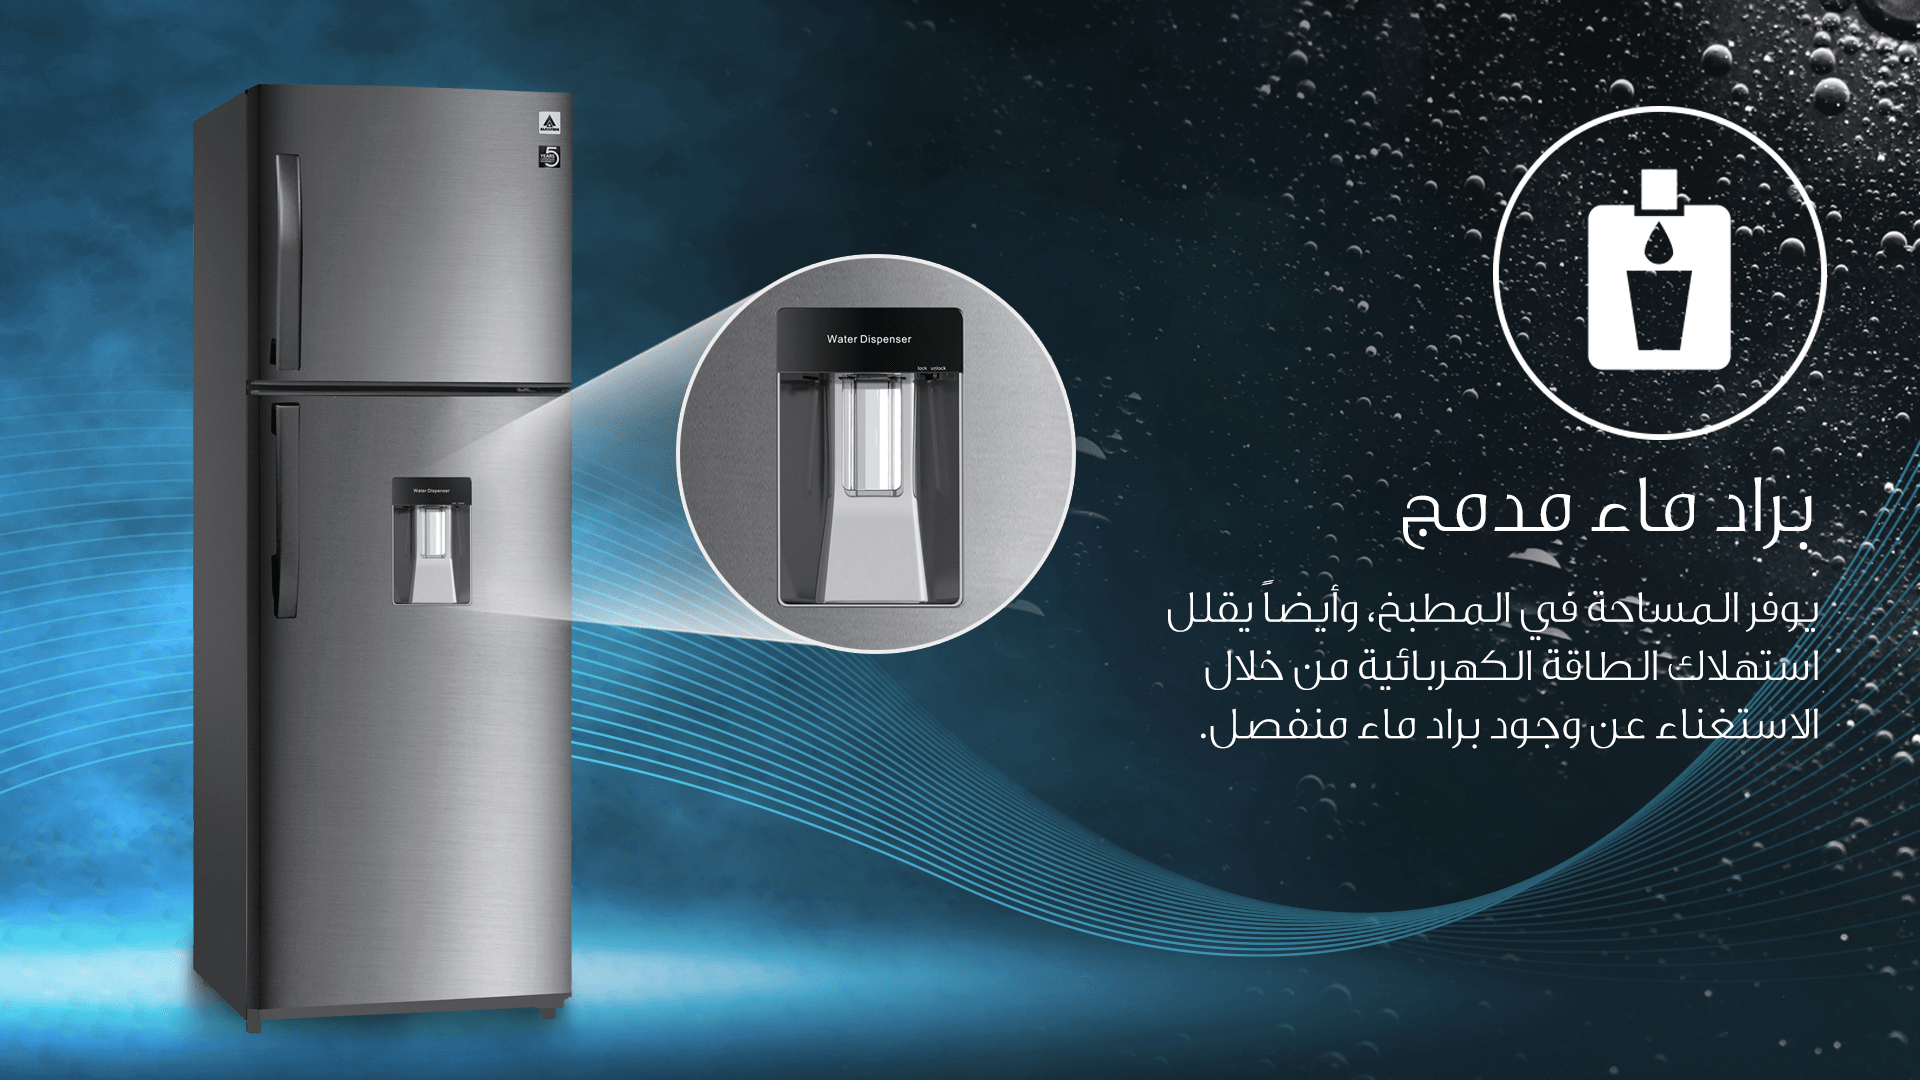 RFHA-TM475NDSS feature with water dispenser